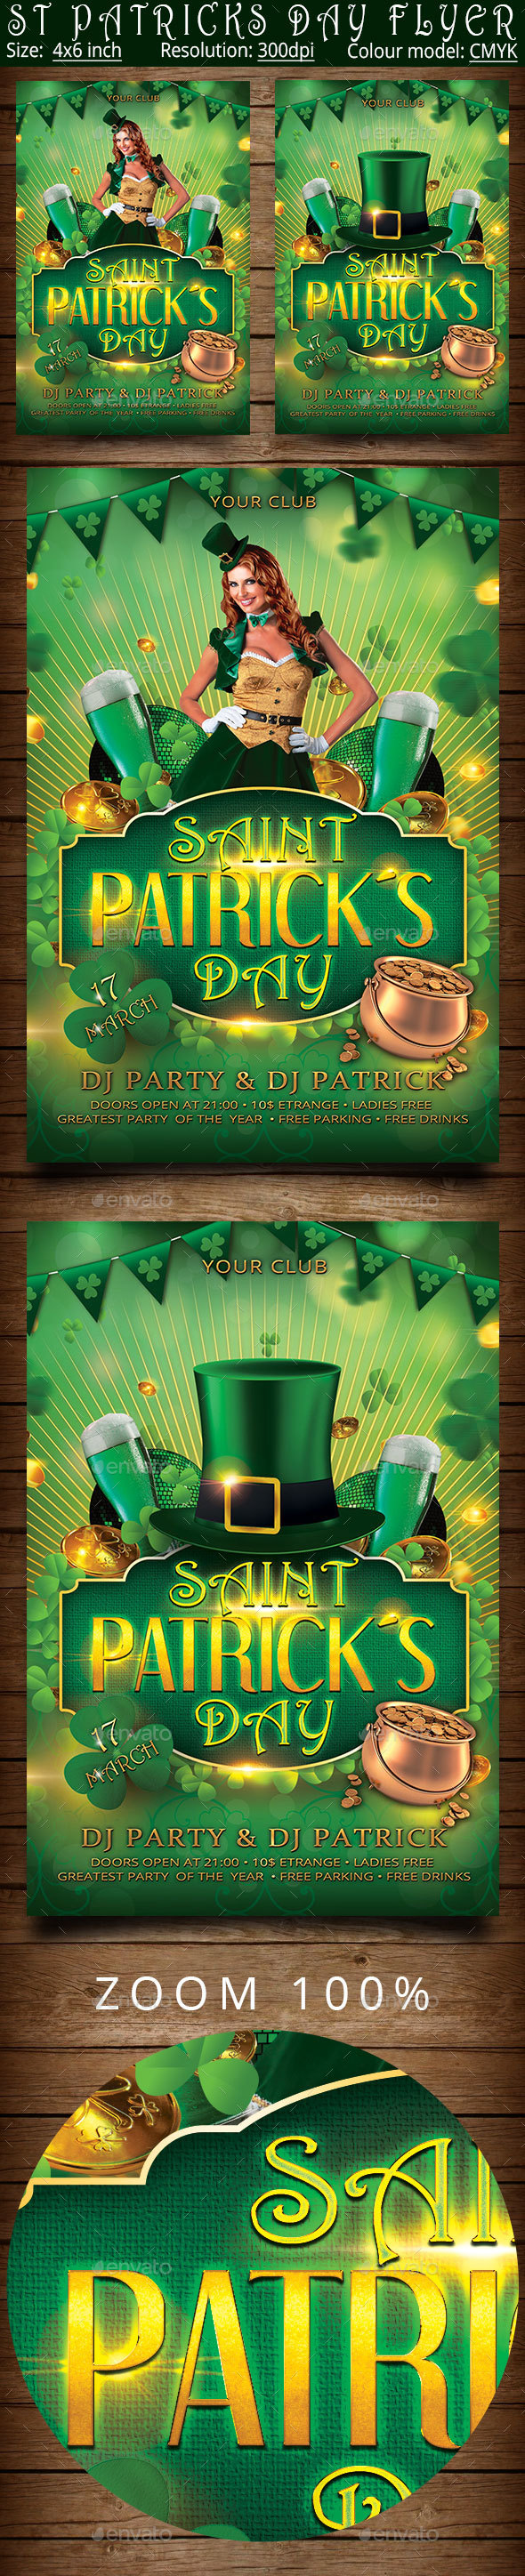 St Patricks Day Flyer Poster Template - Clubs & Parties Events